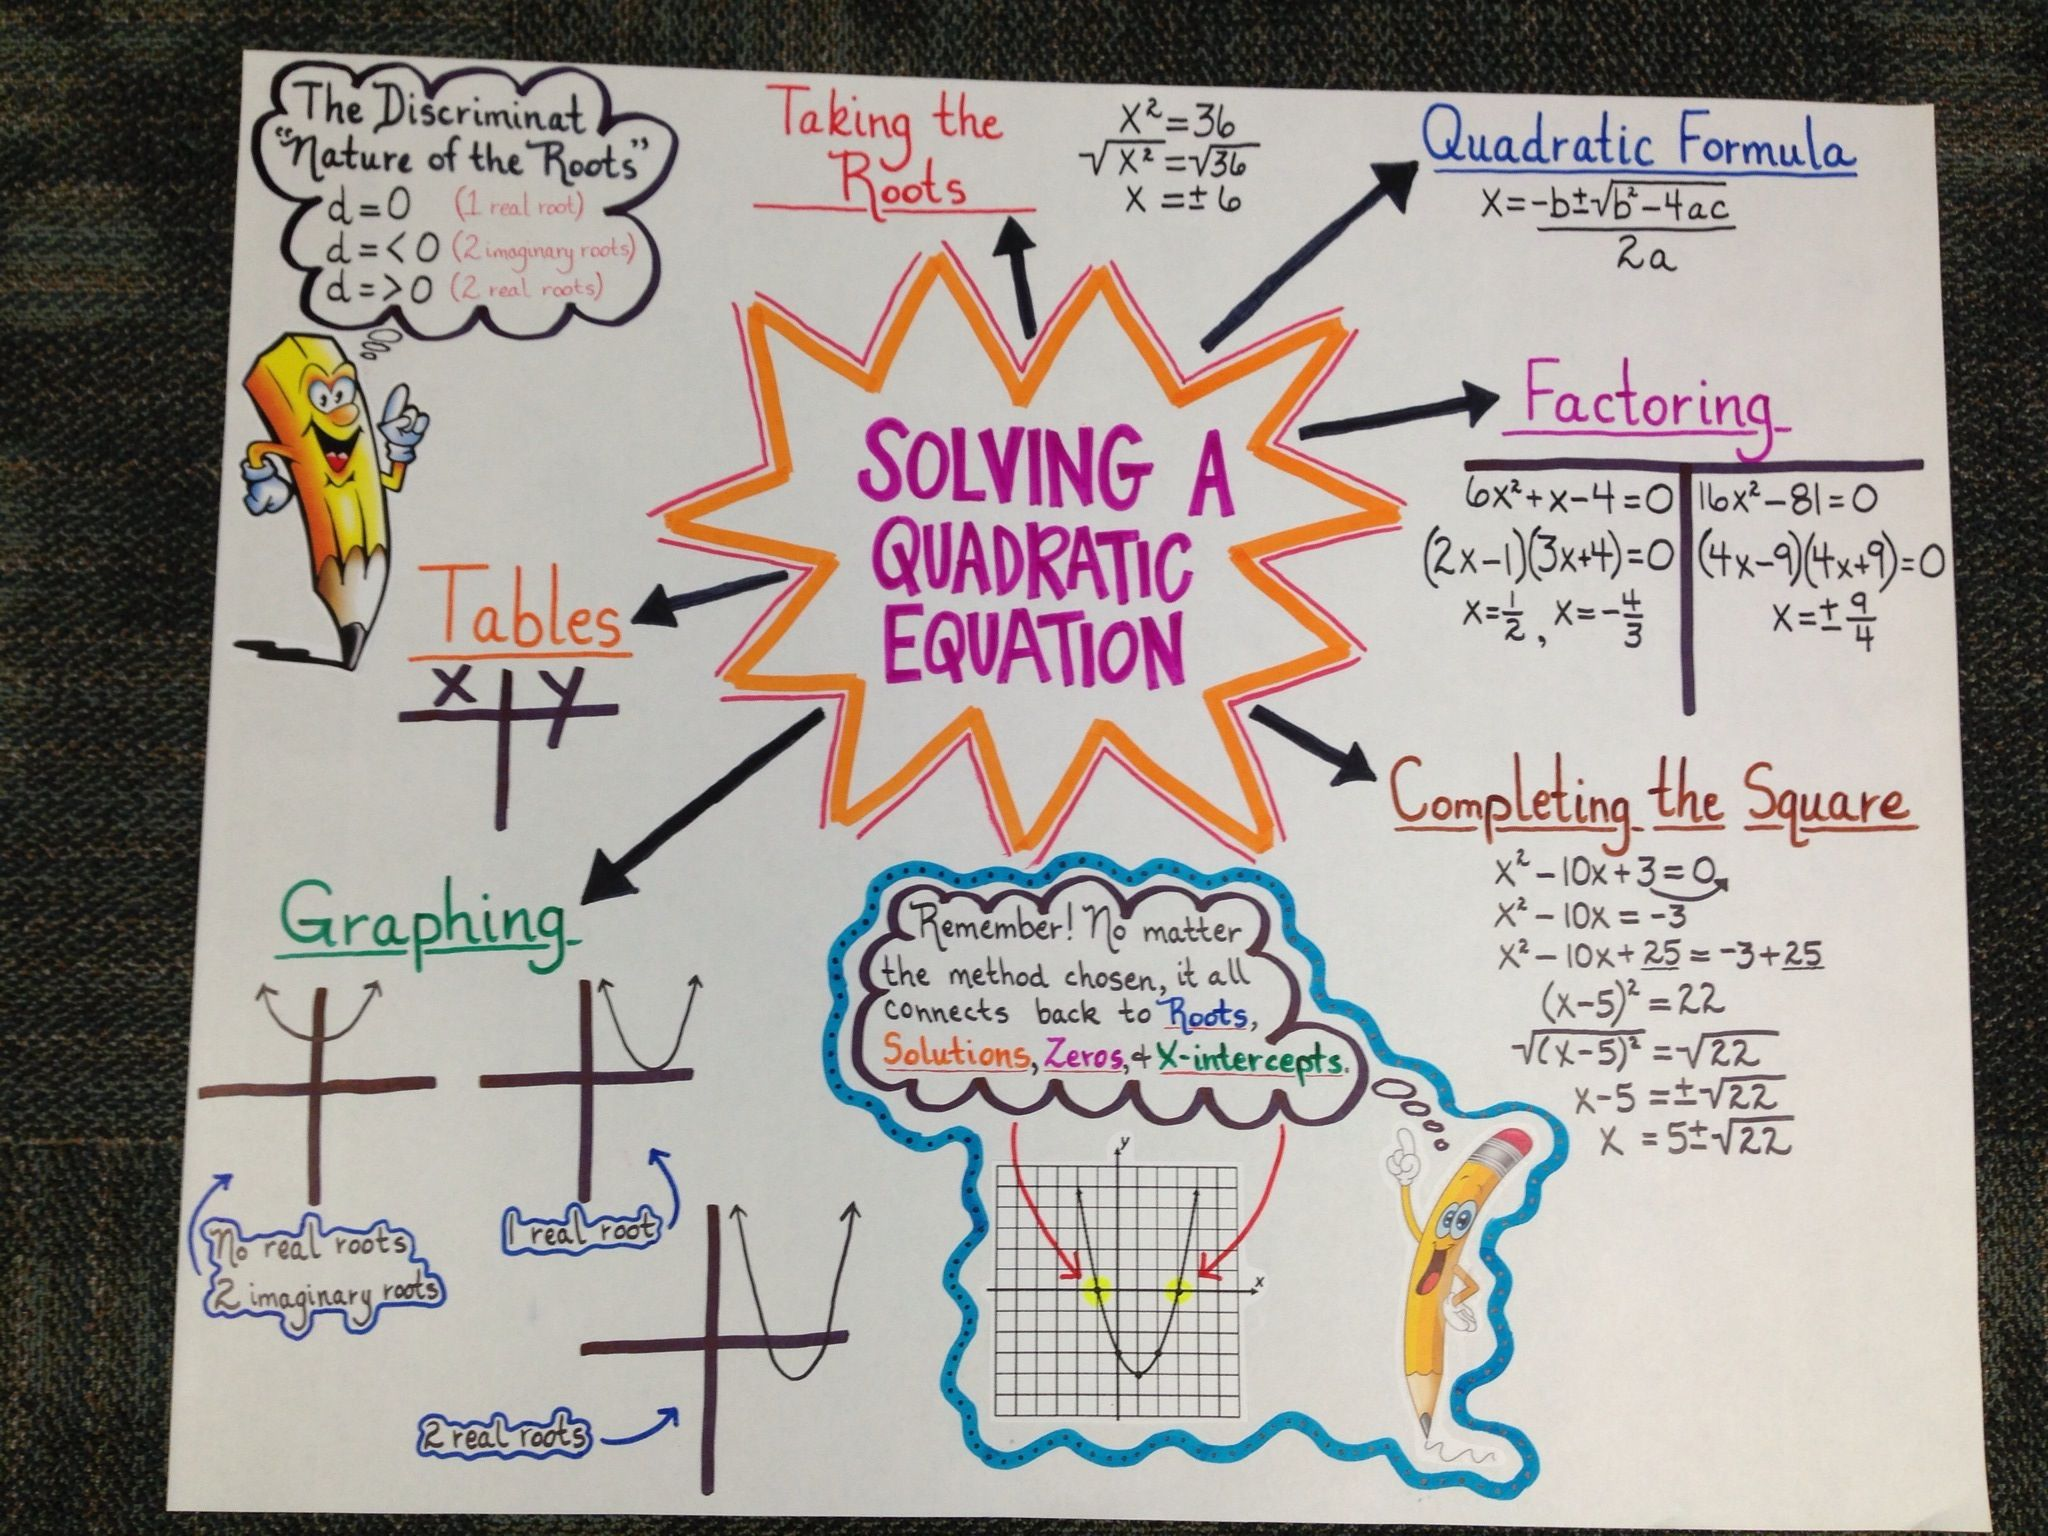 Anchor Chart For Algebra Ii Eoc Review On Solving A Quadratic Equation Made By Brandi Carey